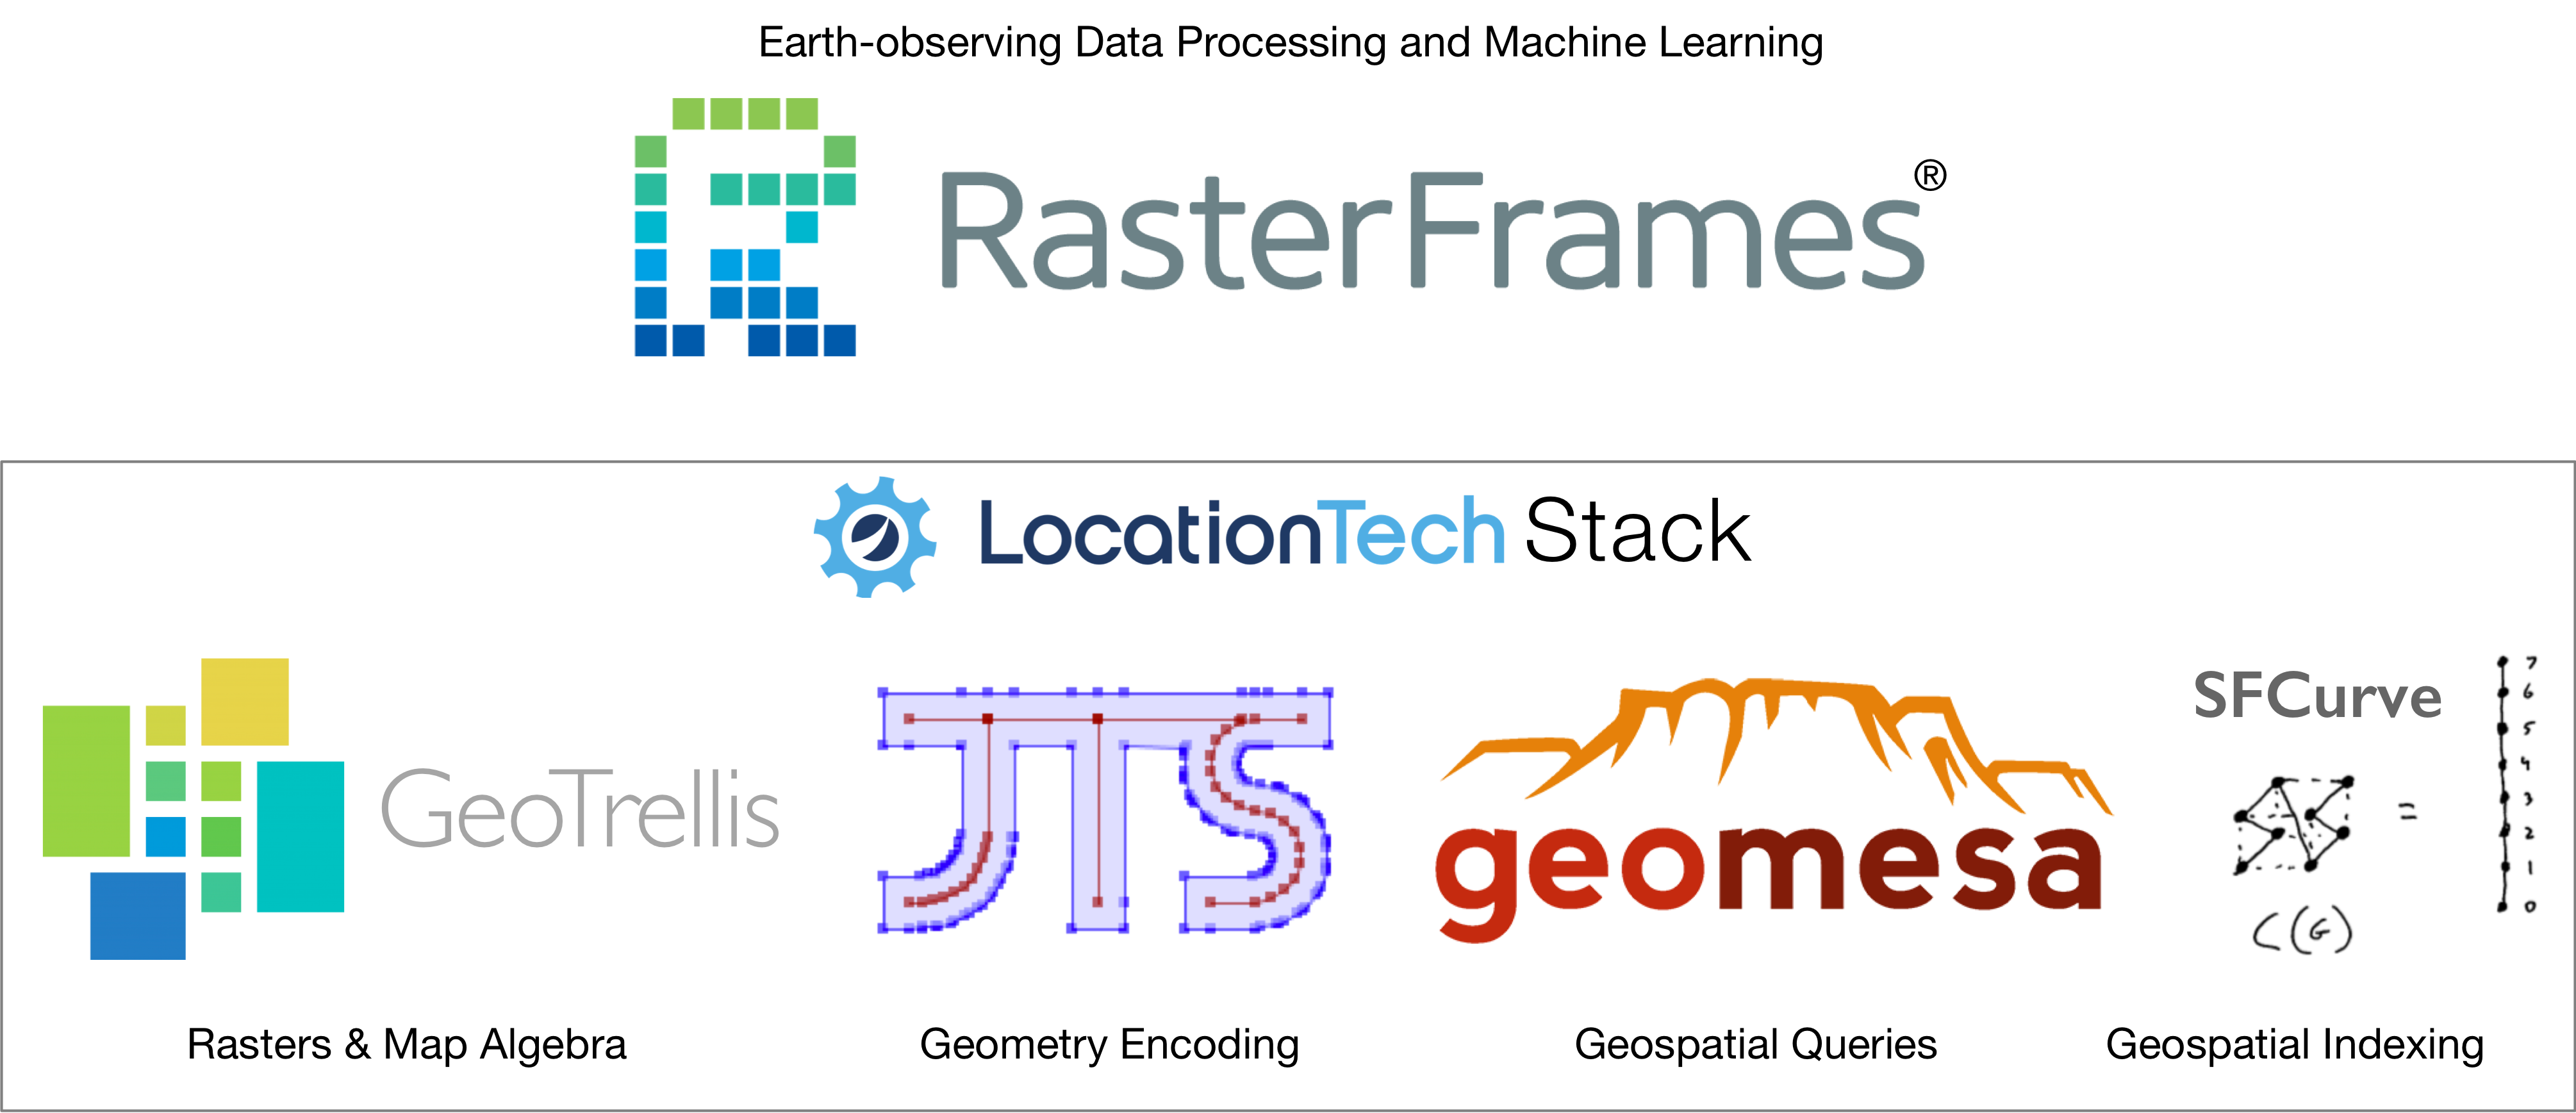 LocationTech Stack